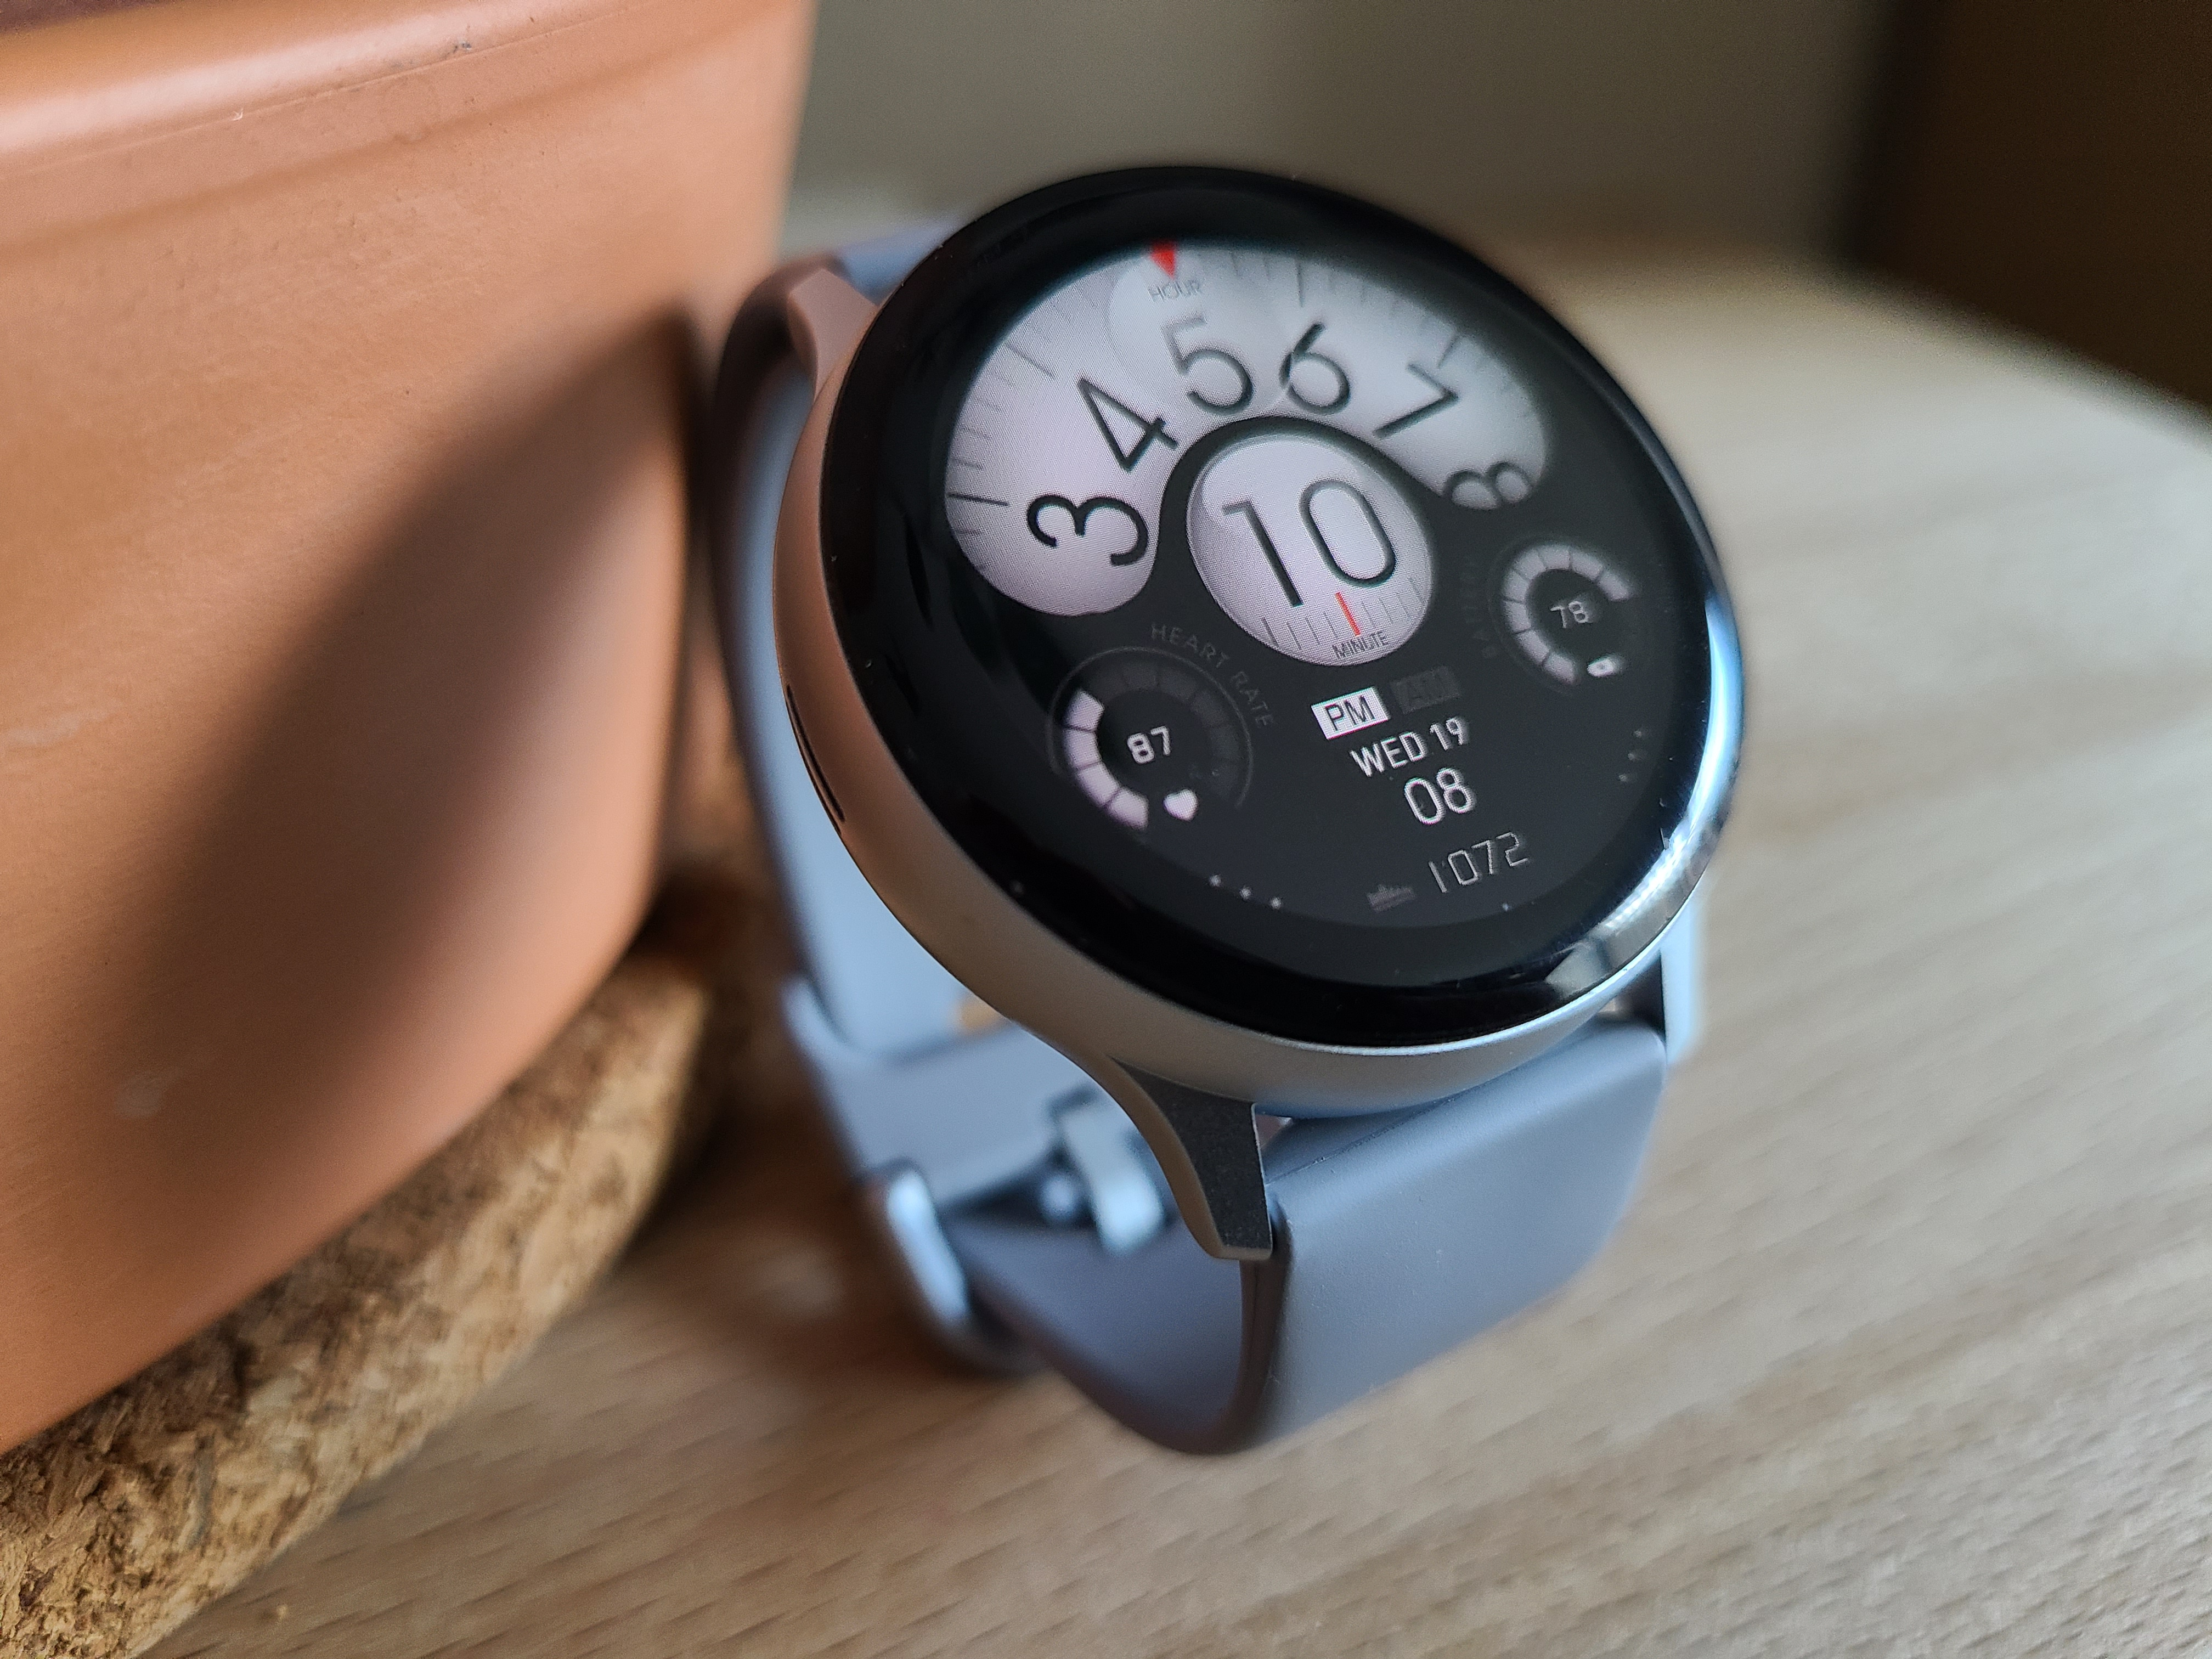 Samsung Galaxy Watch Active 2 with the USA Scalar watch face